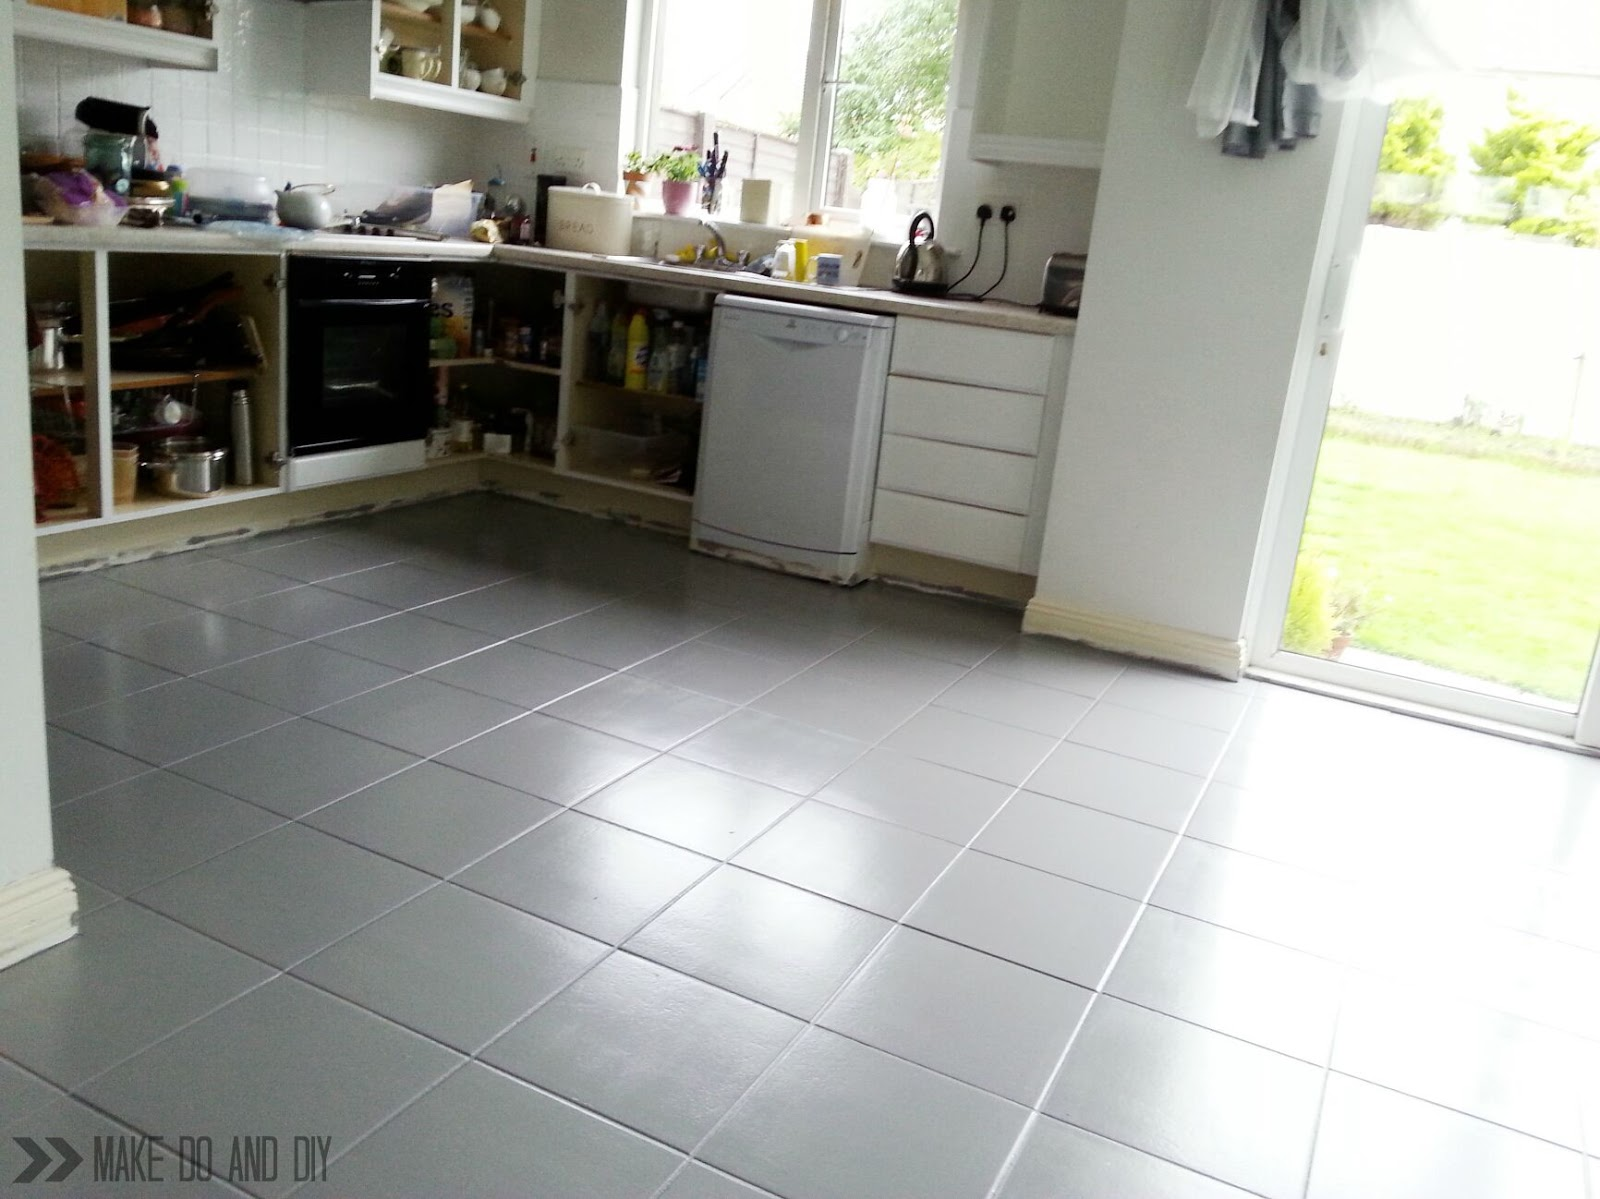 How To Paint Ceramic Floor Tile In Kitchen   Home Painting Painted Tile Floor No Really Make Do And Diy